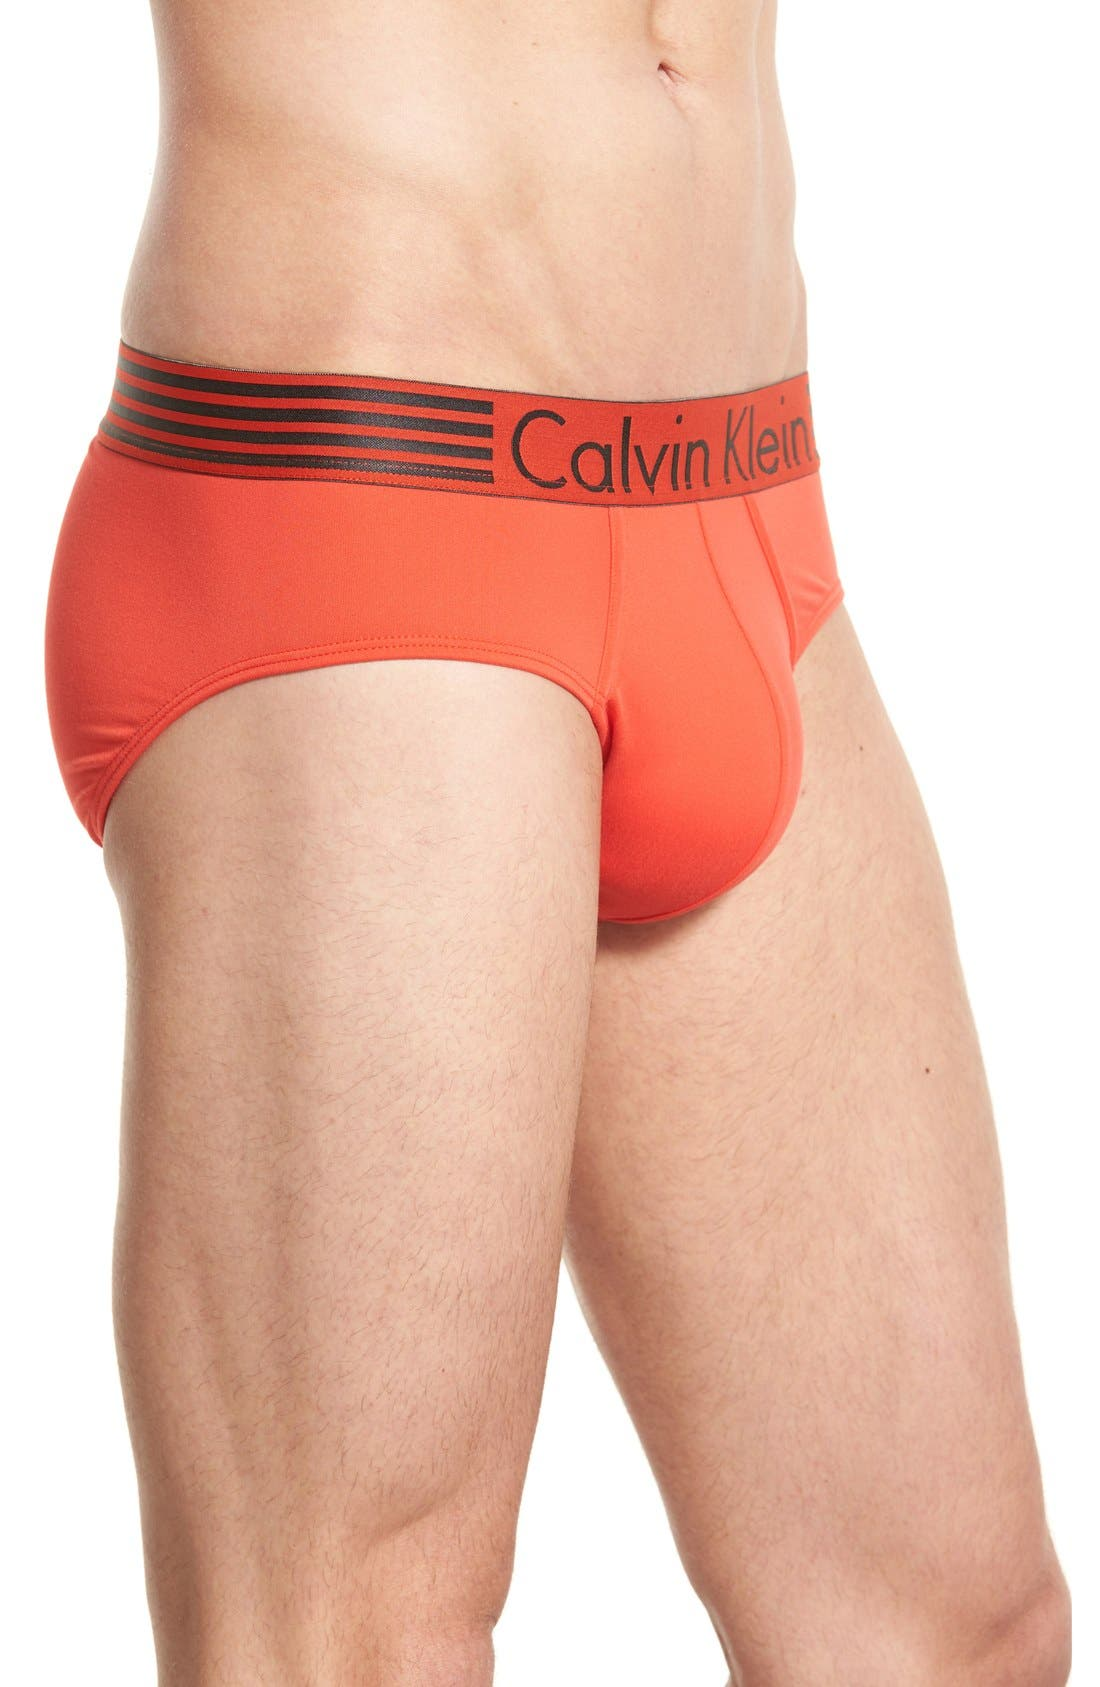 Iron Strength Briefs,                             Alternate thumbnail 13, color,